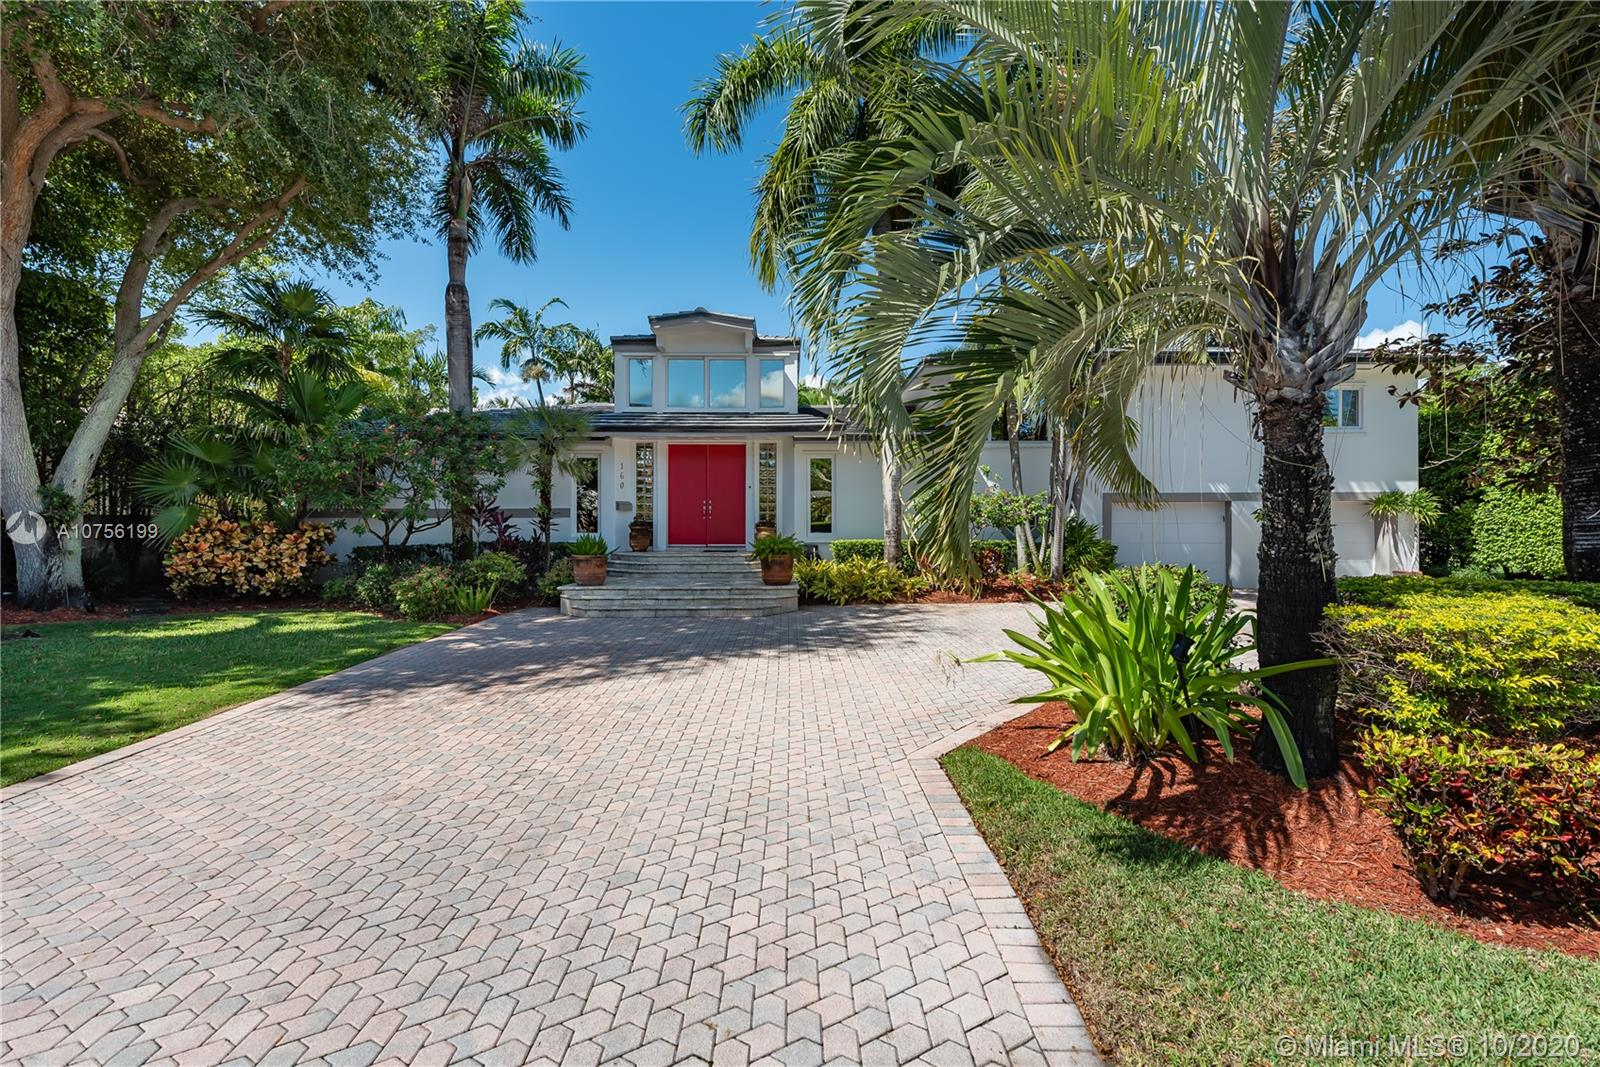 """Looking  for security, space, a yard, a pool ,exclusivity, &  a true neighborhood?  Maybe moving from up North? Look no further. This significantly renovated sun drenched mid century Bal Harbour Village family home features a private master suite w/ steam shower, oak & porcelain floors, separate children's wing, office, new roof, newer a/c's, maids room, cabana bath, builtin vac, 2 car garage.... The kitchen has granite counters, double ovens, gas stove w/lots of storage.  Rose & herb gardens, mature landscaping and built in bbq help to create a private poolside oasis. This heritage home is being offered for the first time in 24 years. """"Peace Village"""" is a coveted hidden gem w/ its private streets, marina, access to parks & beaches, along w/A+ rated schools, shops and houses of worship."""